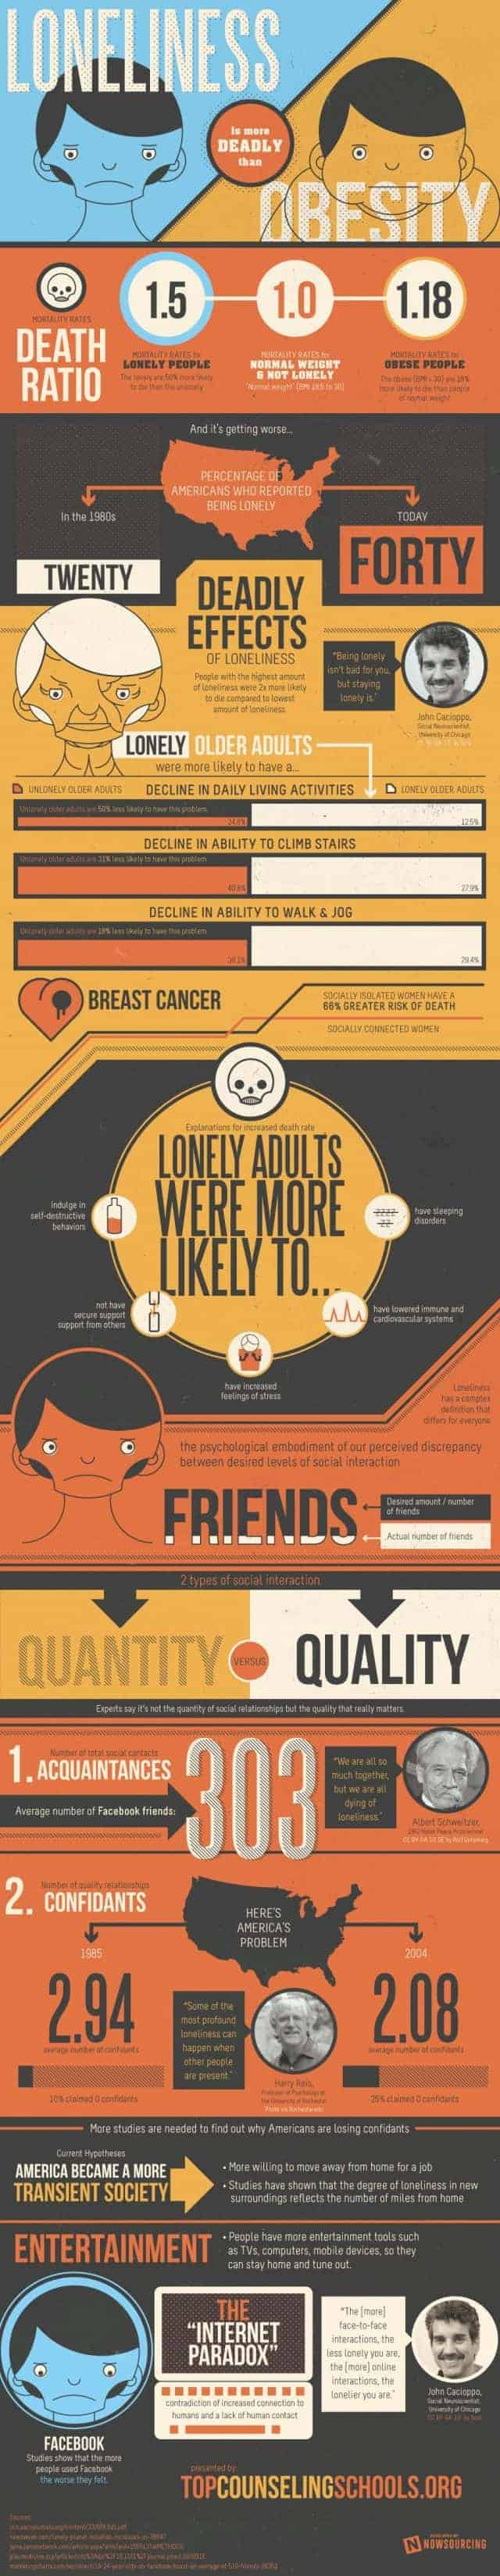 loneliness More Deadly Than Obesity